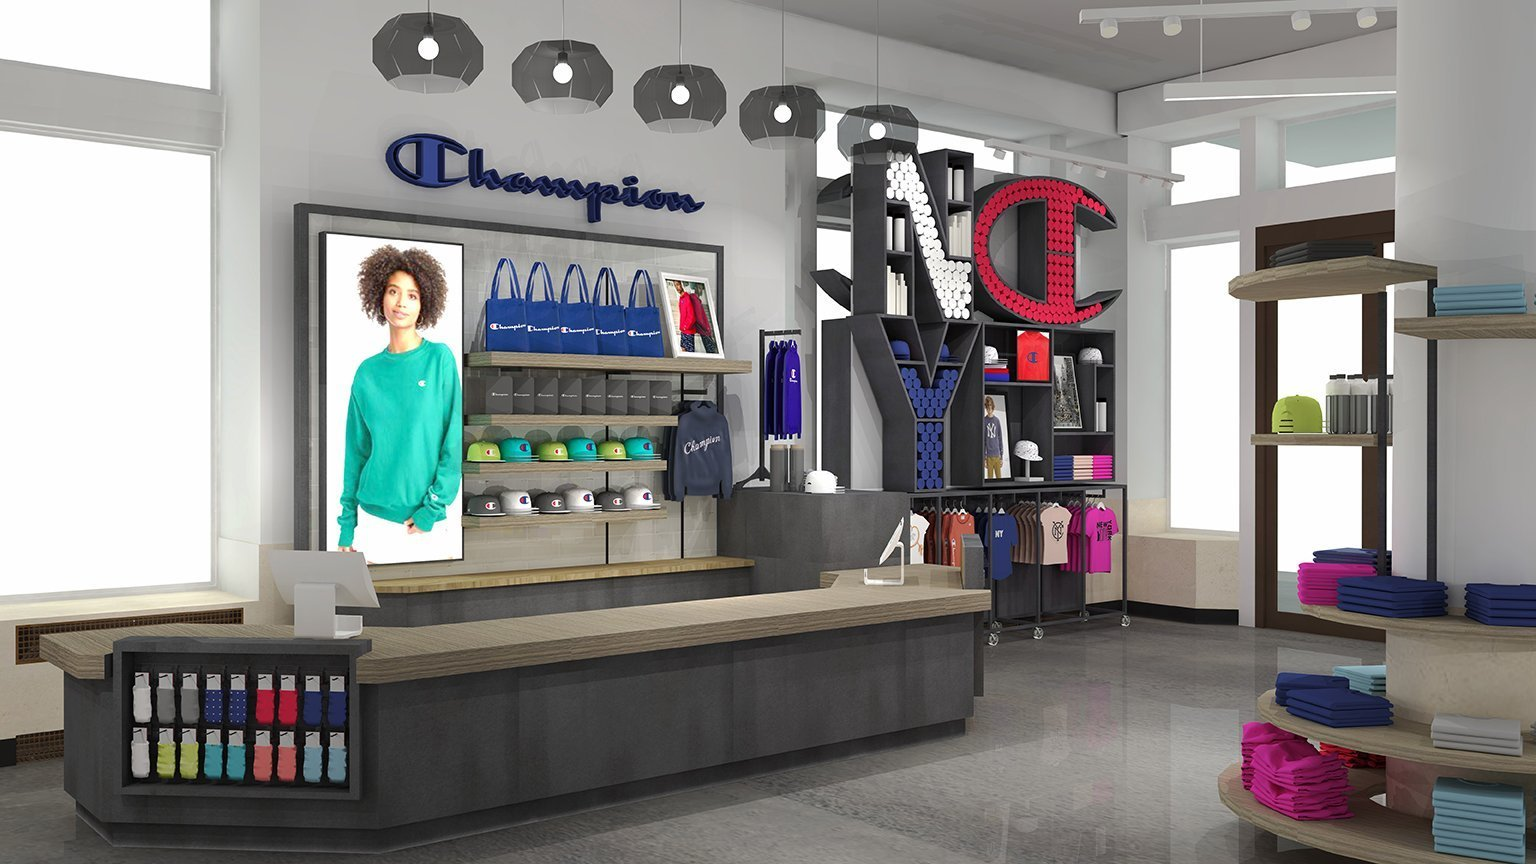 """This custom cash wrap in the shape of the letter """"C"""" for Champion features a light toned wood counter top with metal base and a custom merchandise display on the wall behind. A large custom merchandise display in the shape of the letters """"NYC"""" stands between the cash wrap and the entrance, holding merchandise within the letters and the surrounding shelving."""